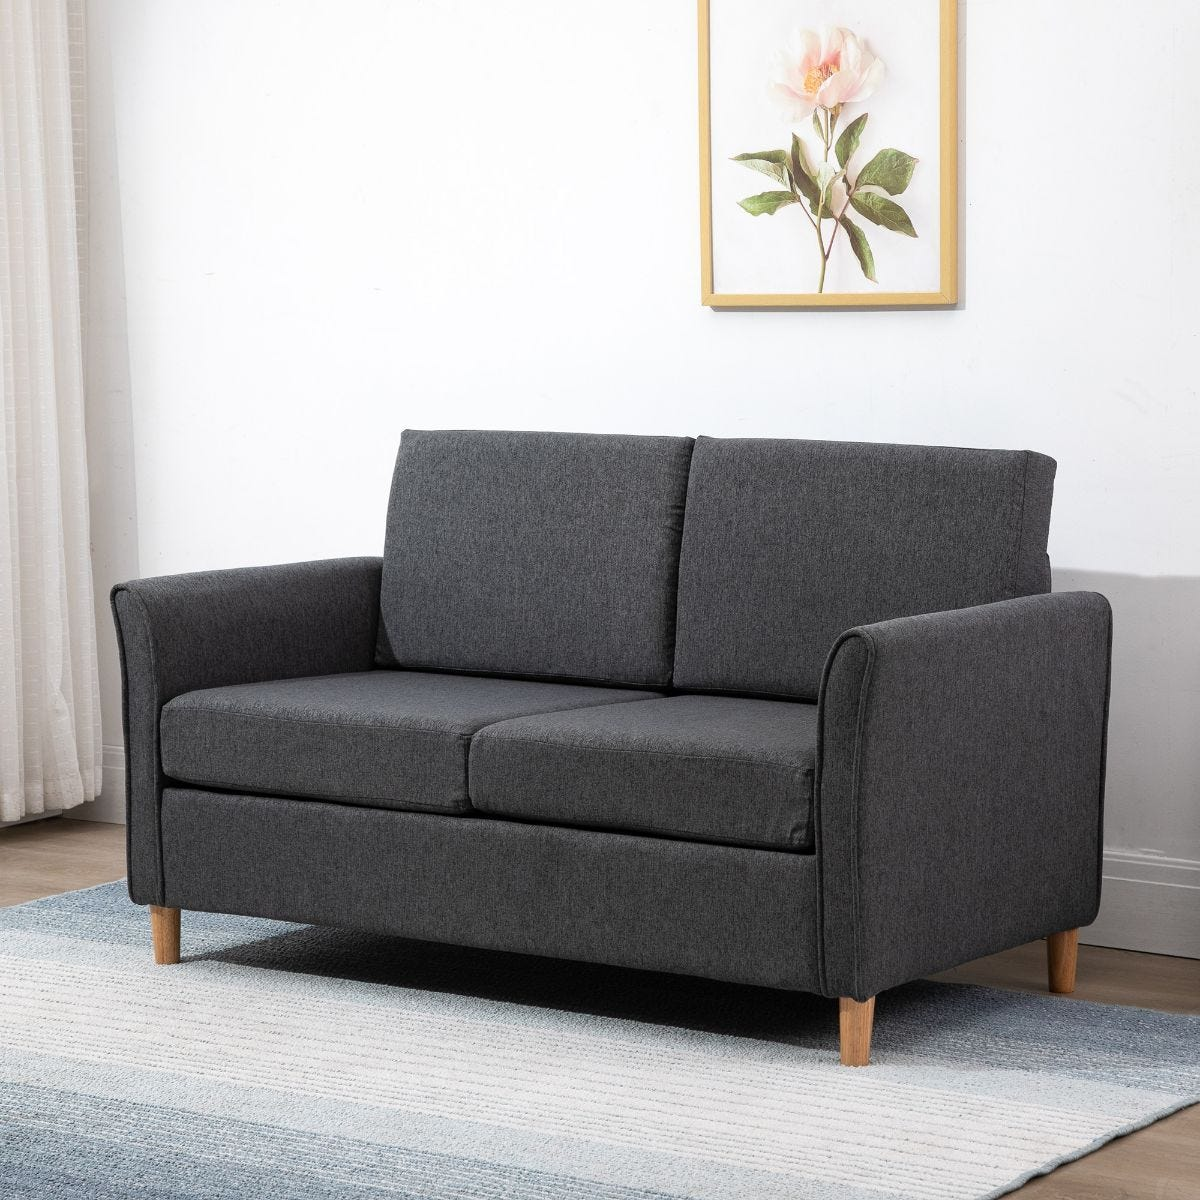 Compact Two Seater Sofa With Armrests Linen Style Upholstery Dark Grey